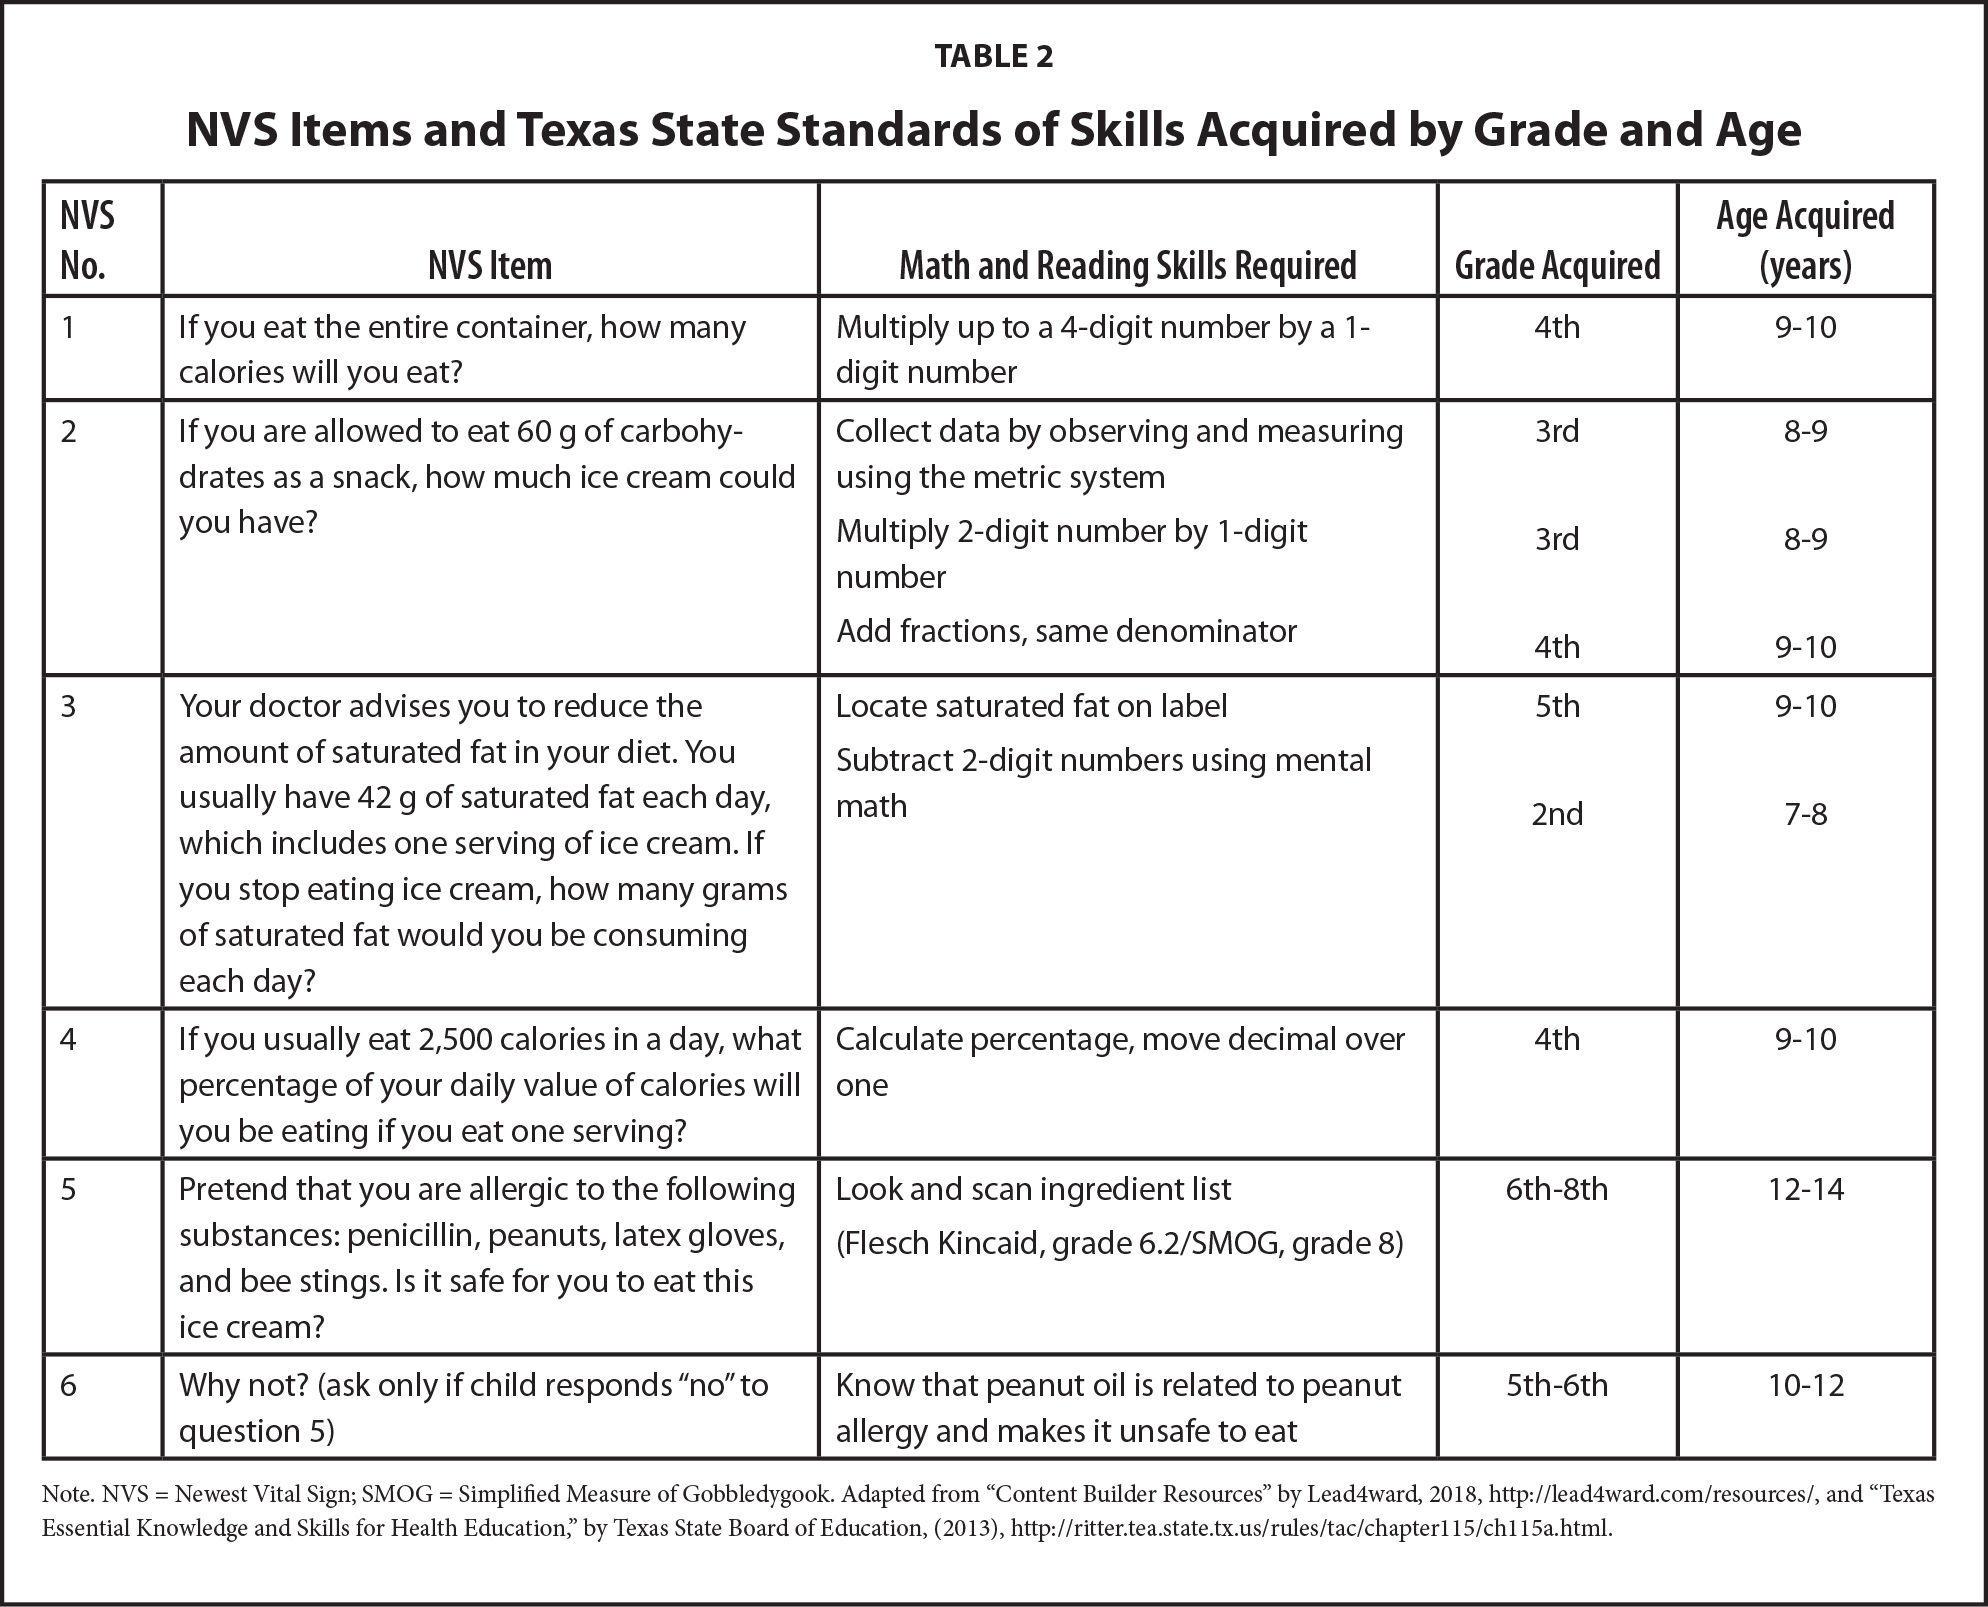 NVS Items and Texas State Standards of Skills Acquired by Grade and Age